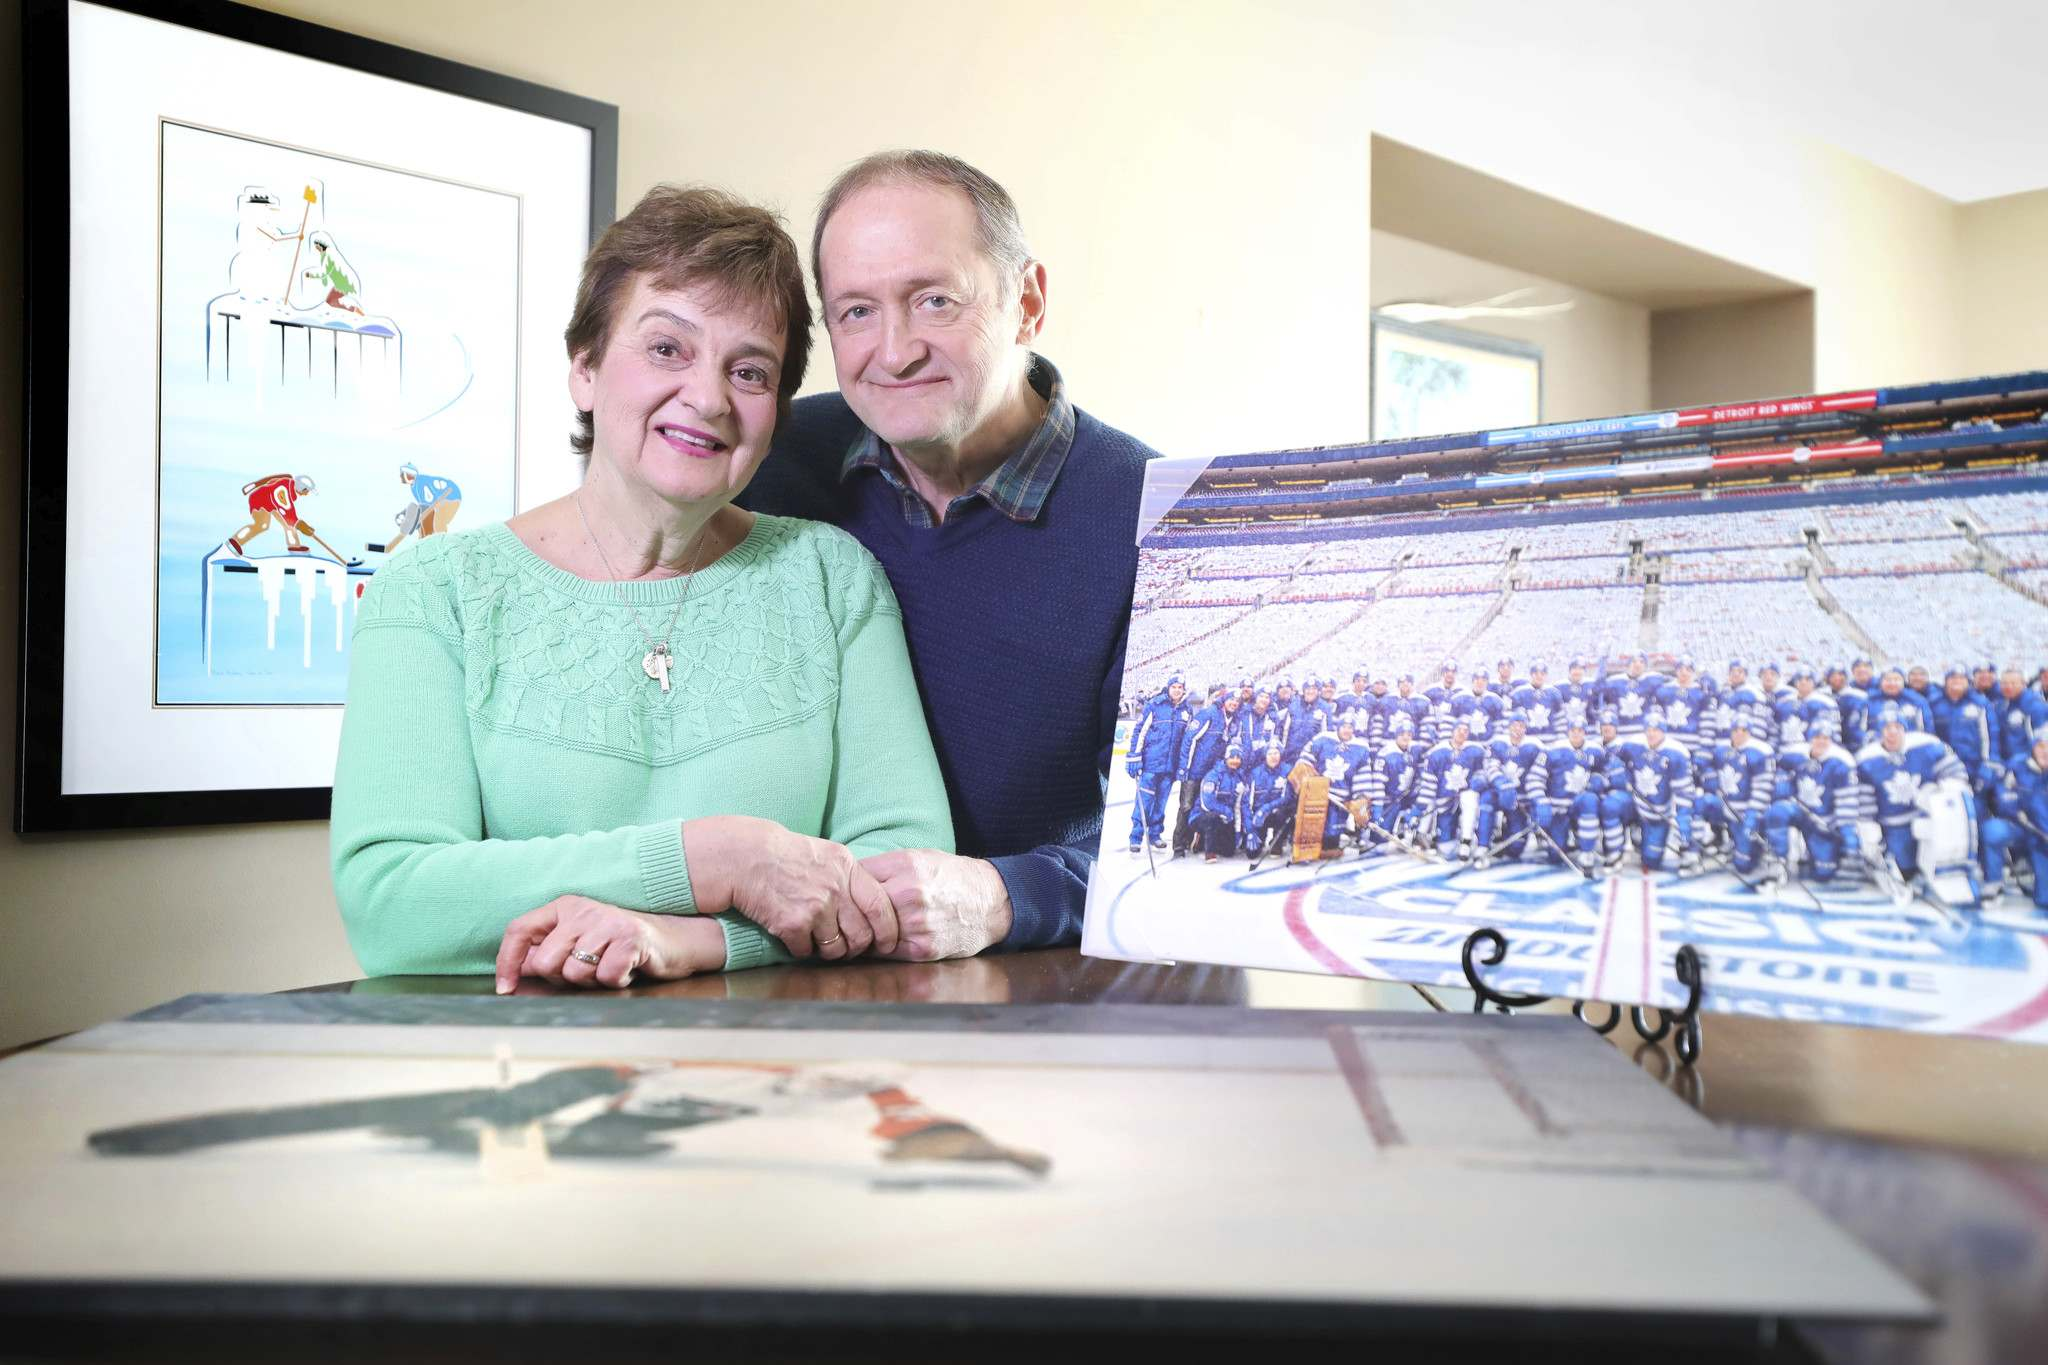 St. Croix with his wife Michelle and some of the memorabilia from his NHL career. (Ruth Bonneville / Winnipeg Free Press)